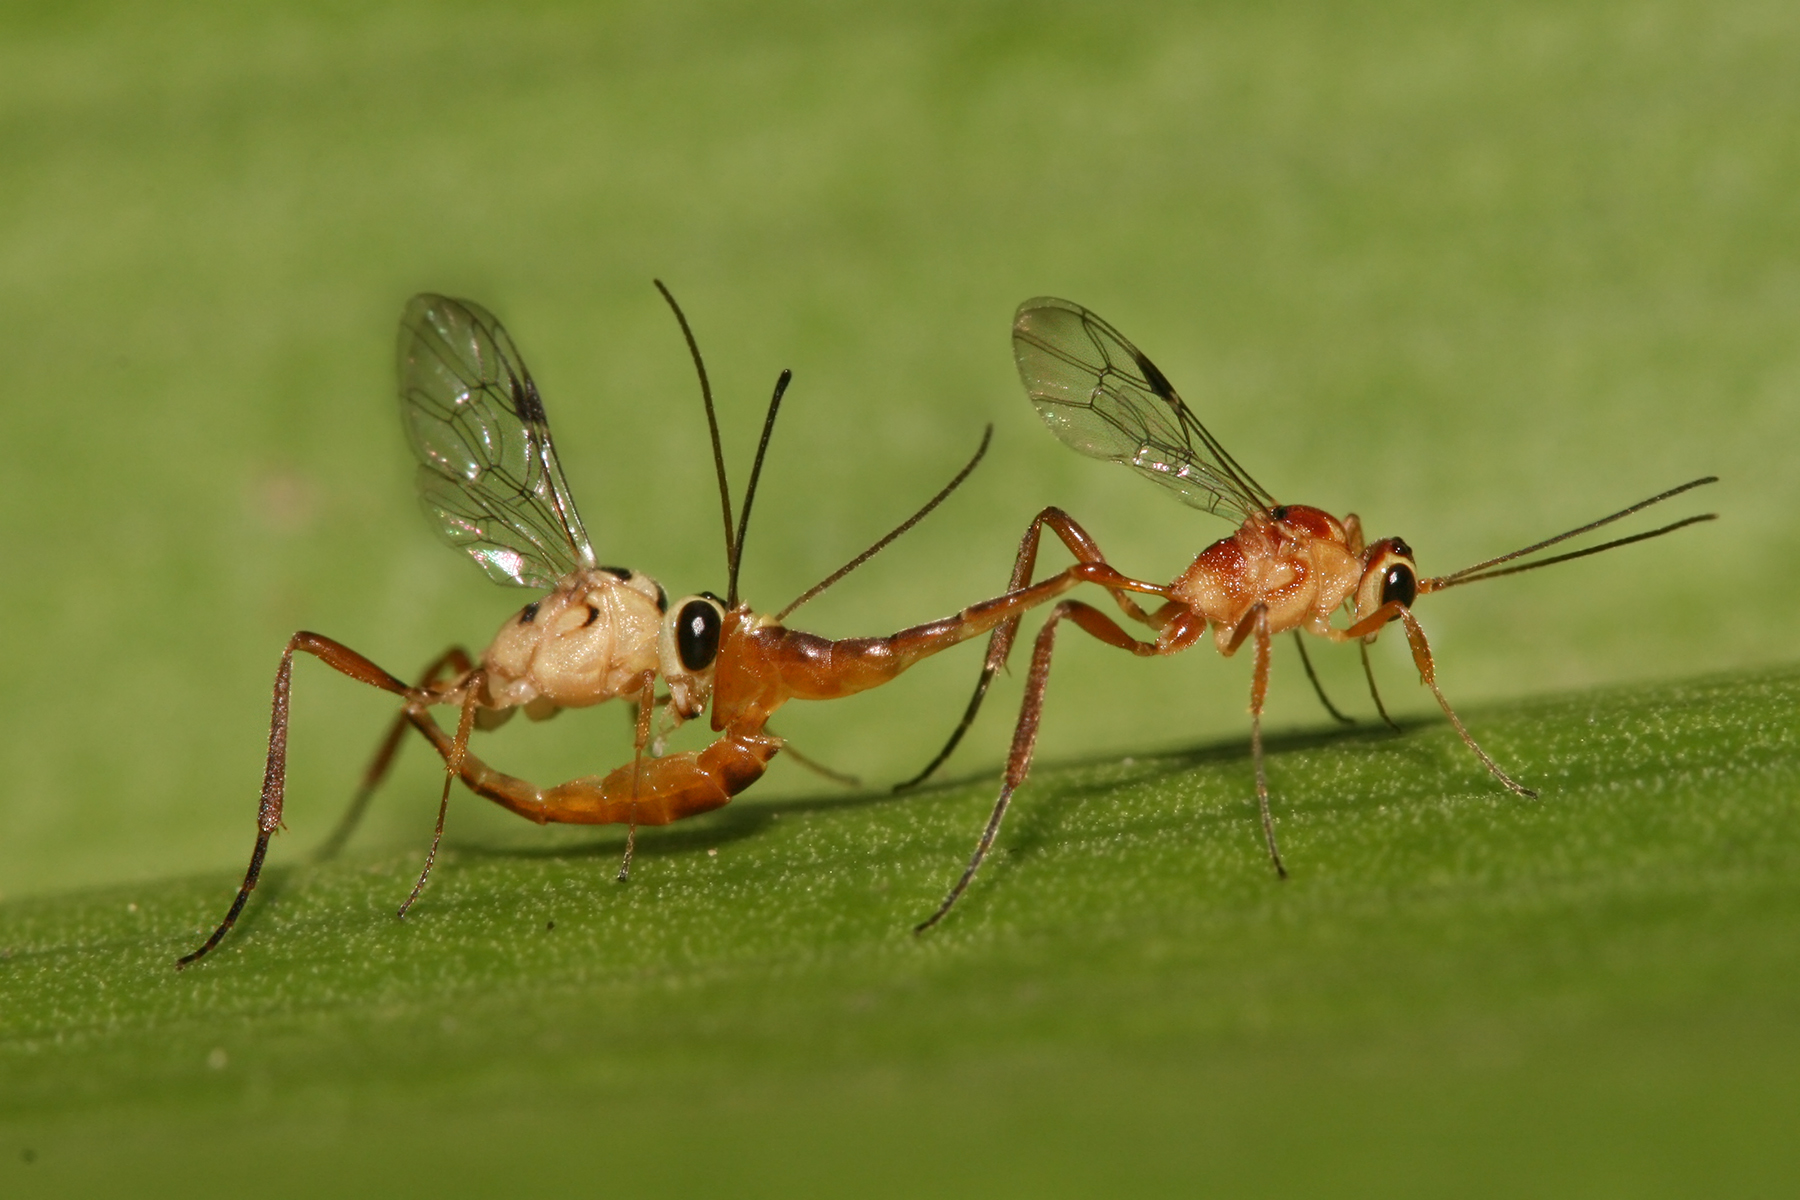 File:Ichneumonidae mating.jpg - Wikipedia